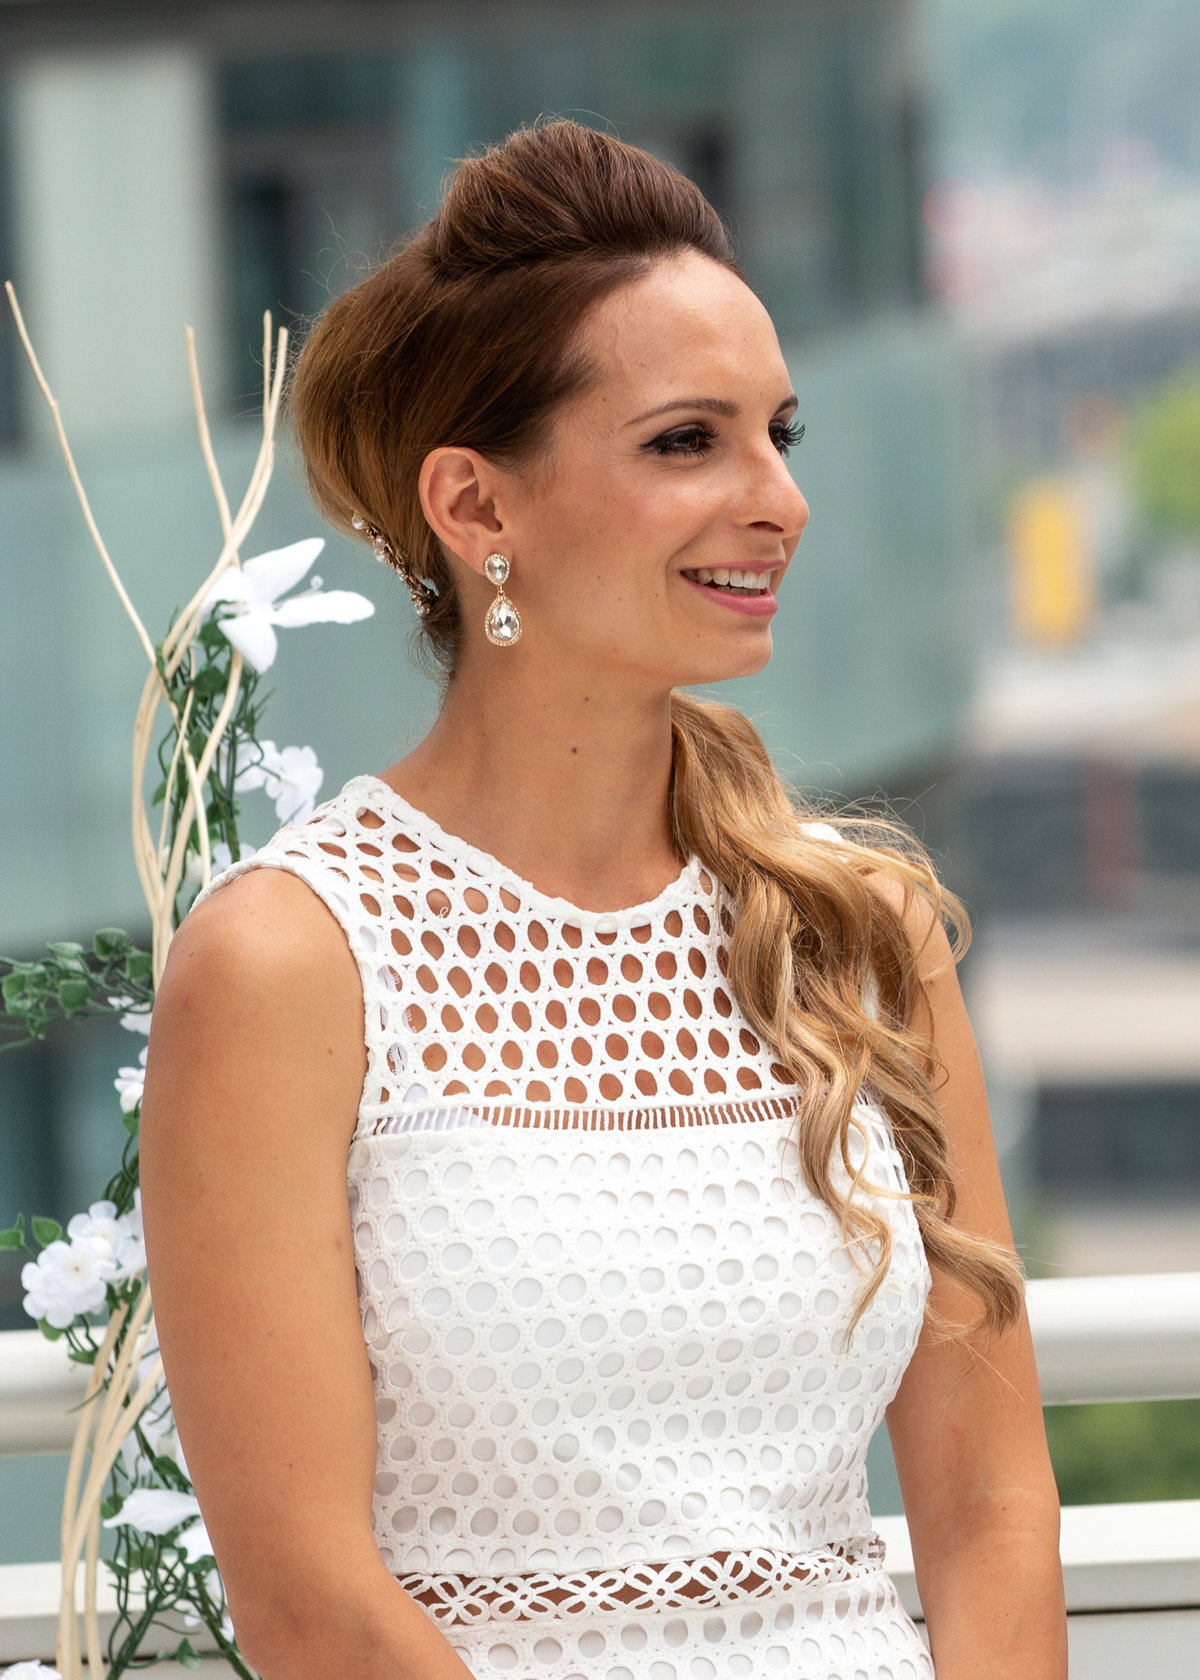 Bride wearing a modern white bridal dress smiling as she stands at the  Toronto rooftop wedding alter